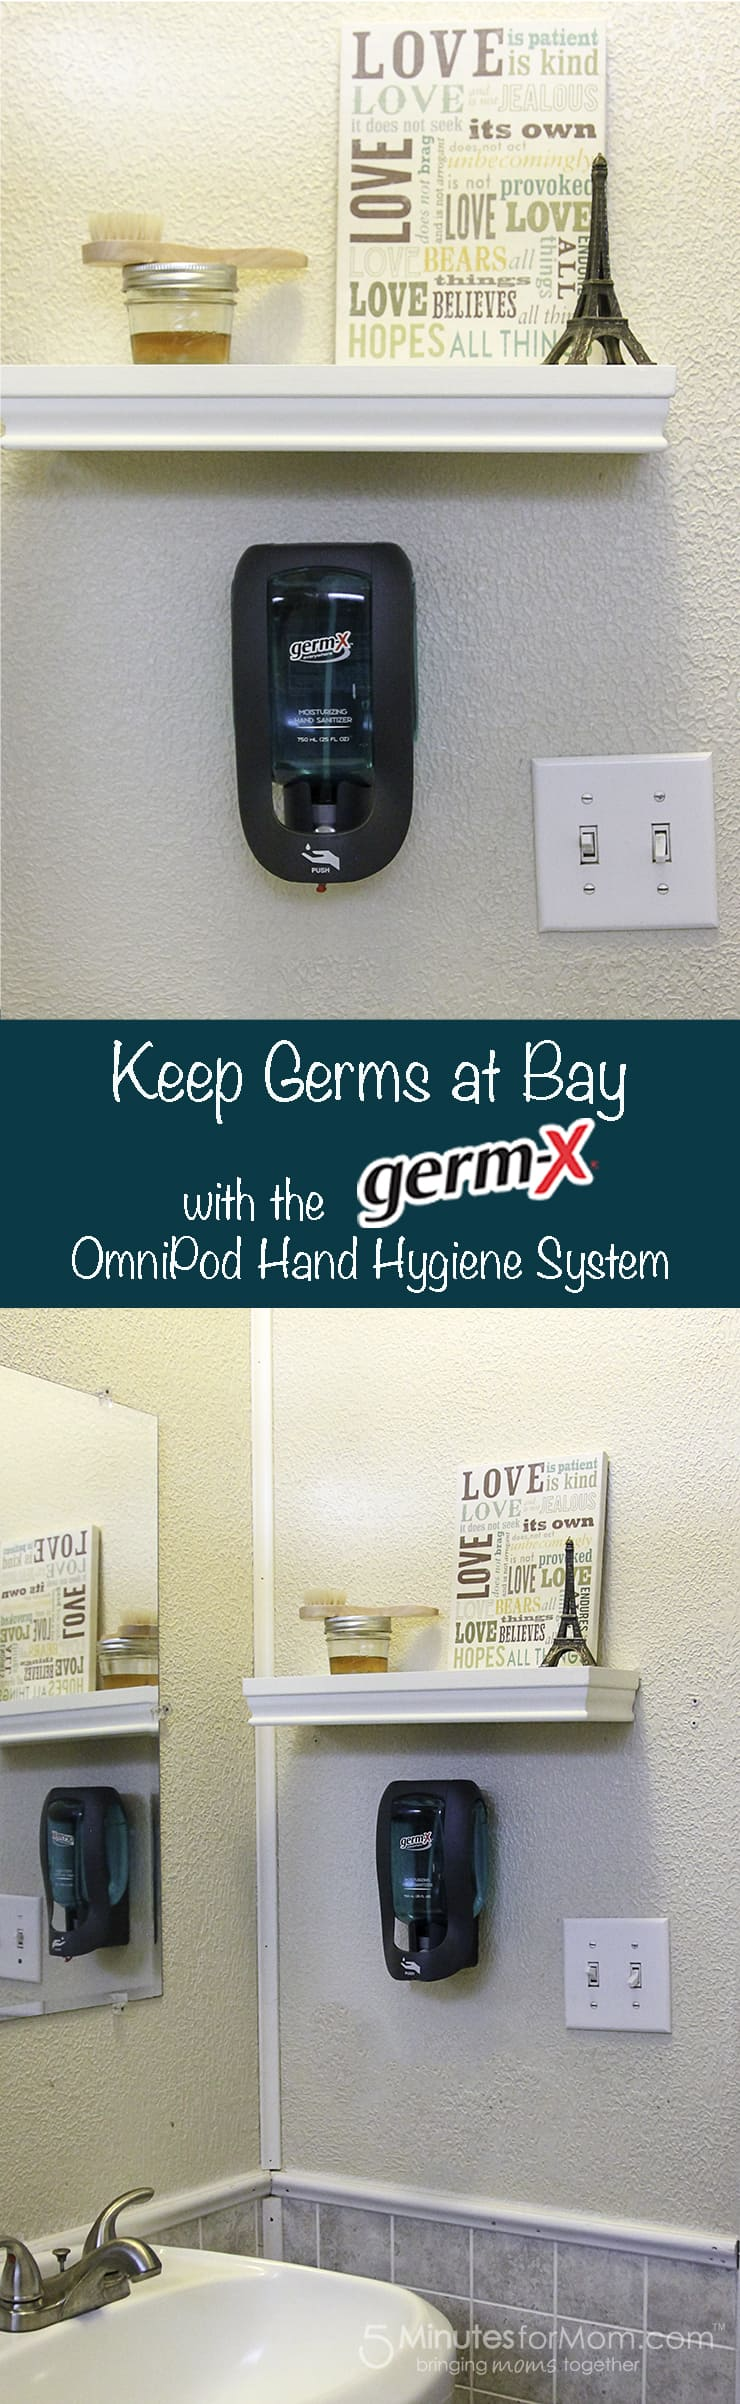 Keep Germs at bay with the Germ-X OmniPod Hand Hygiene System